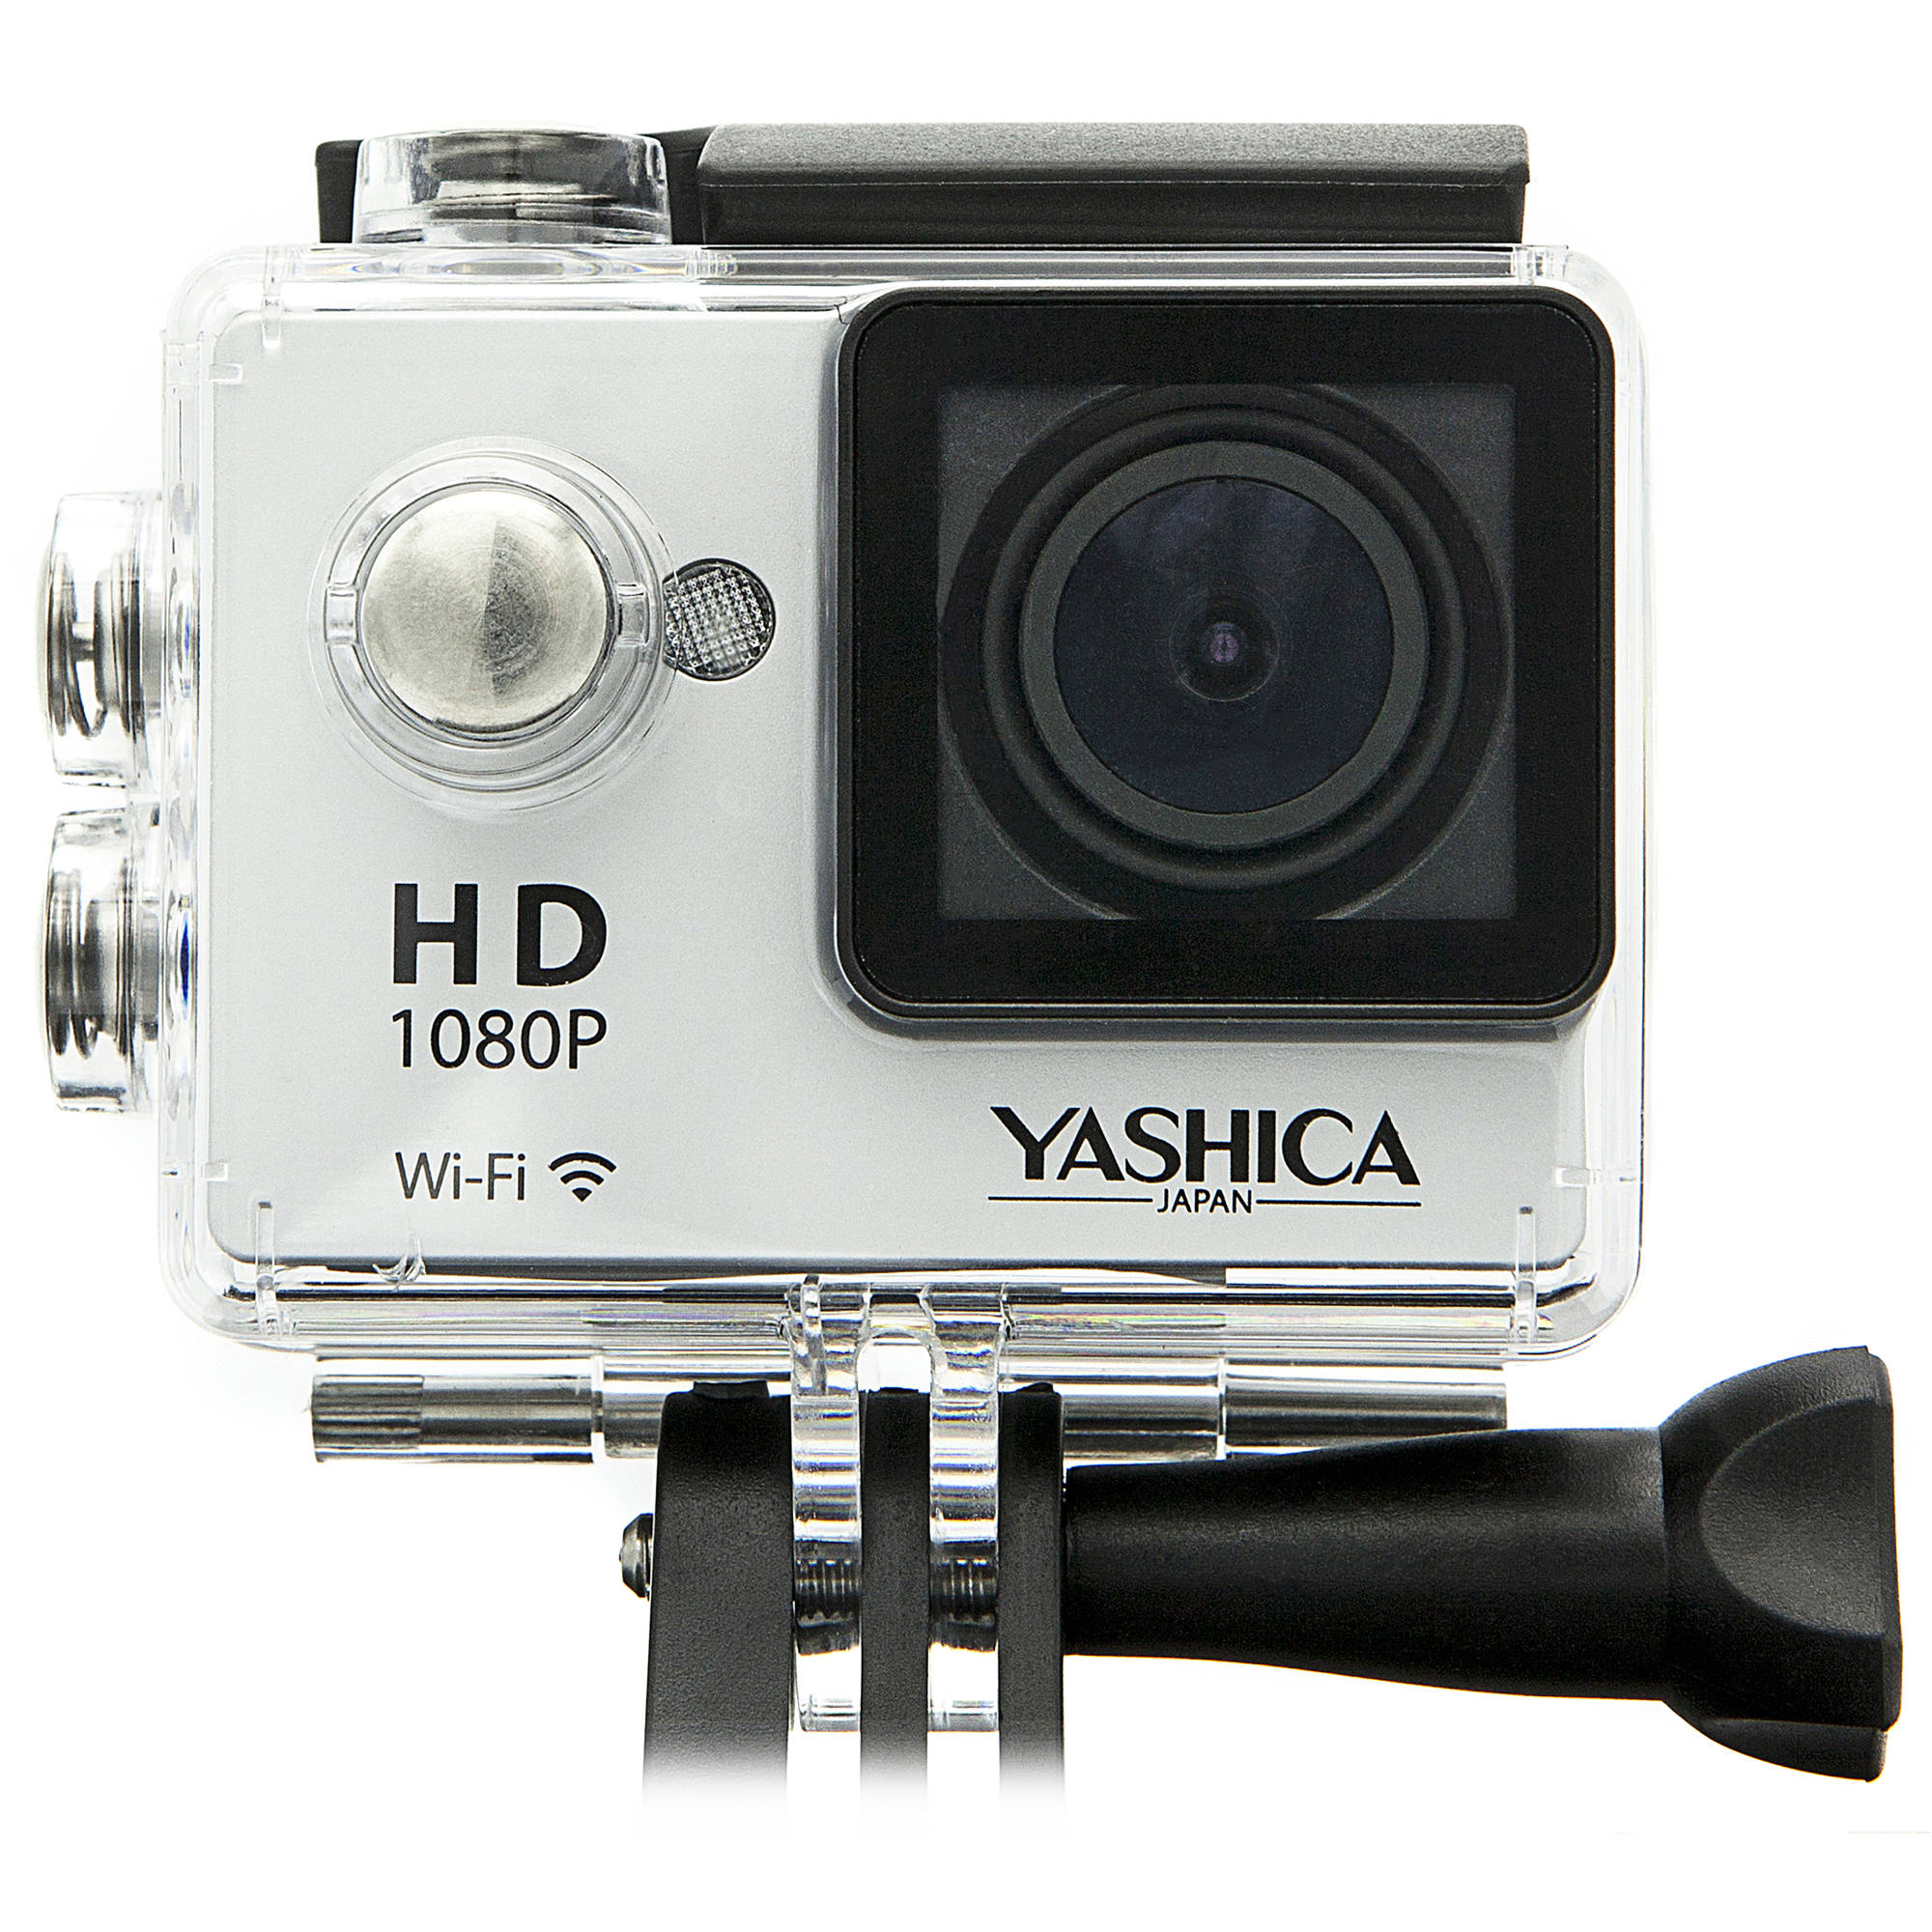 Kyocera / Yashica YAC-301 Full HD 1080p Action Camera YAC-301